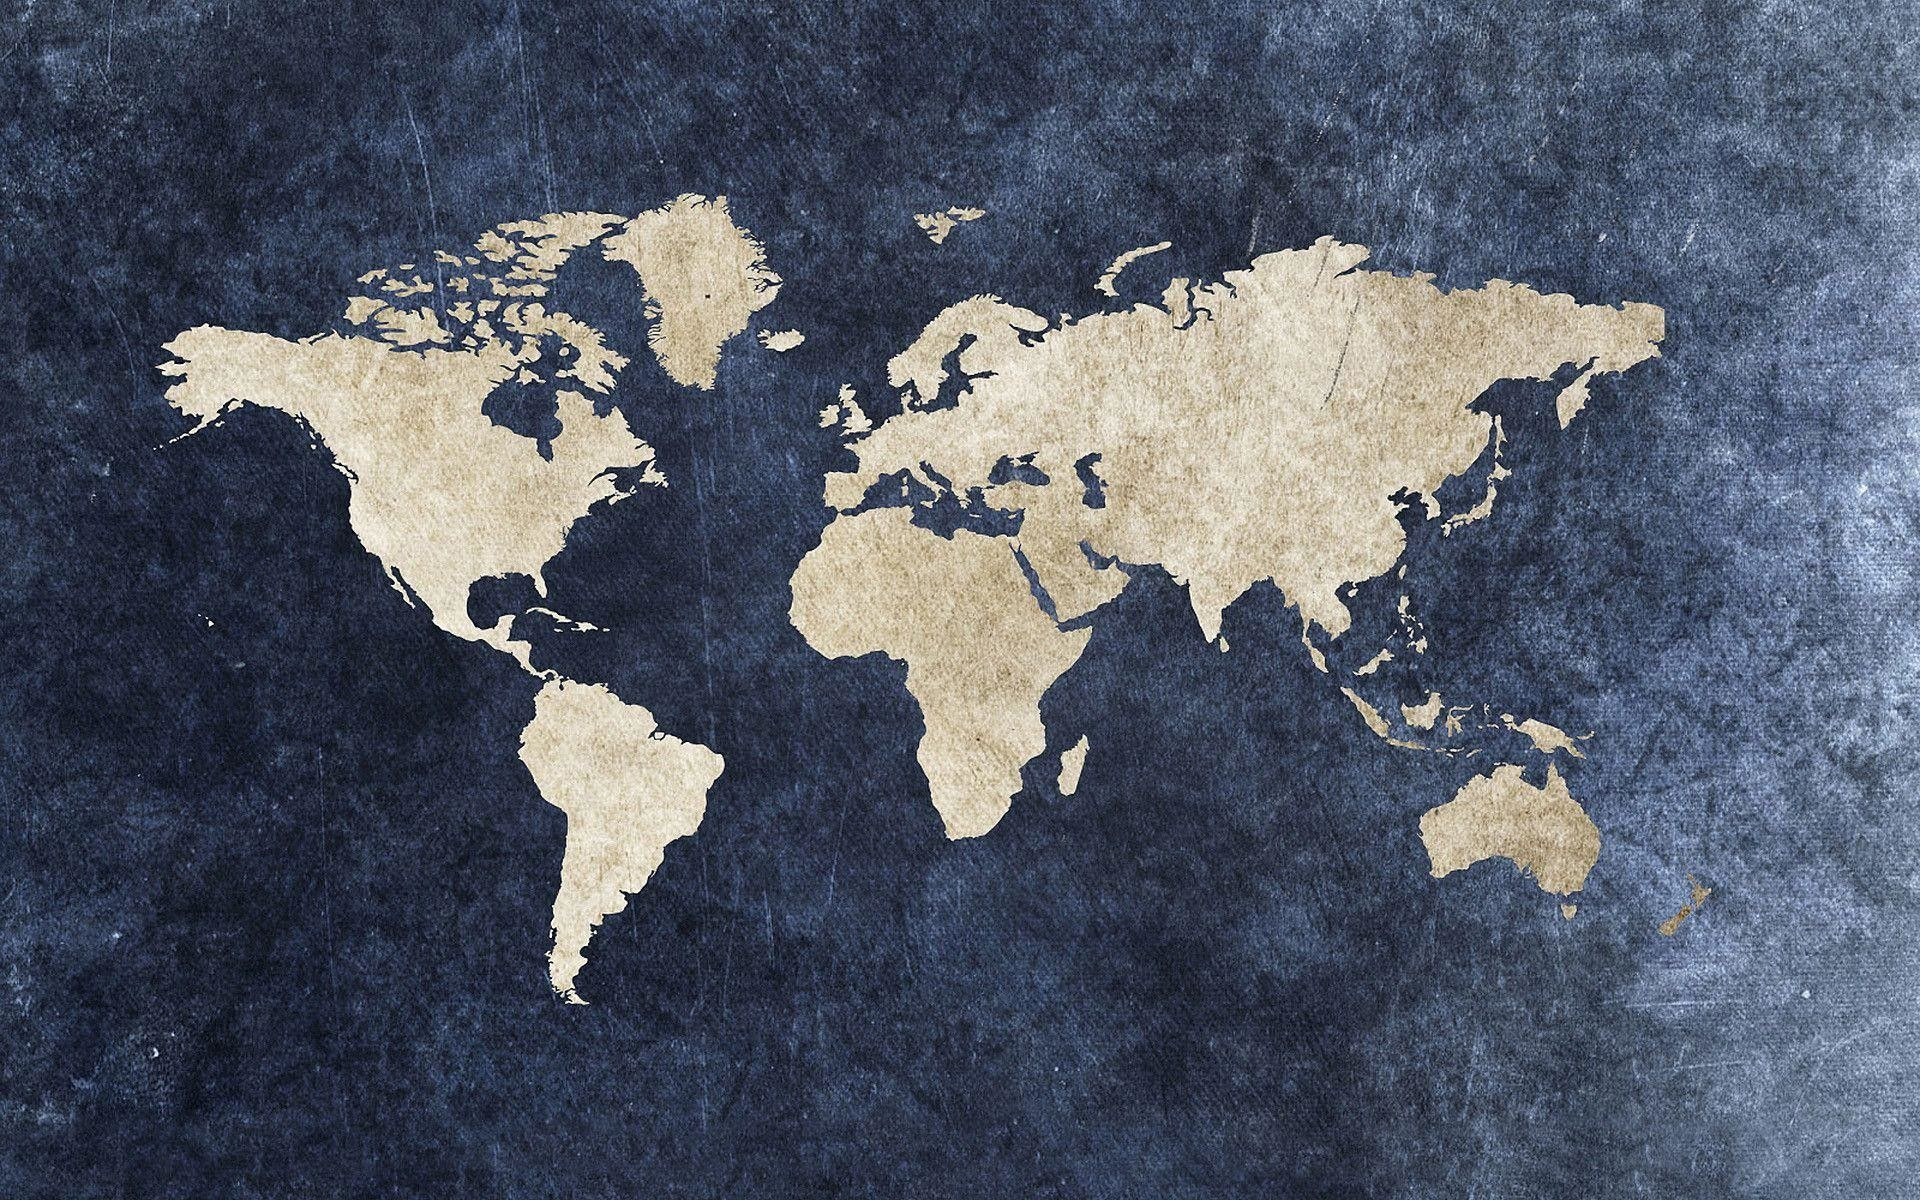 World Map Wallpapers Full Hd Wallpaper Search 1920x1200 In 2020 Computer Wallpaper Desktop Wallpapers Laptop Wallpaper Desktop Wallpapers Wallpaper Notebook